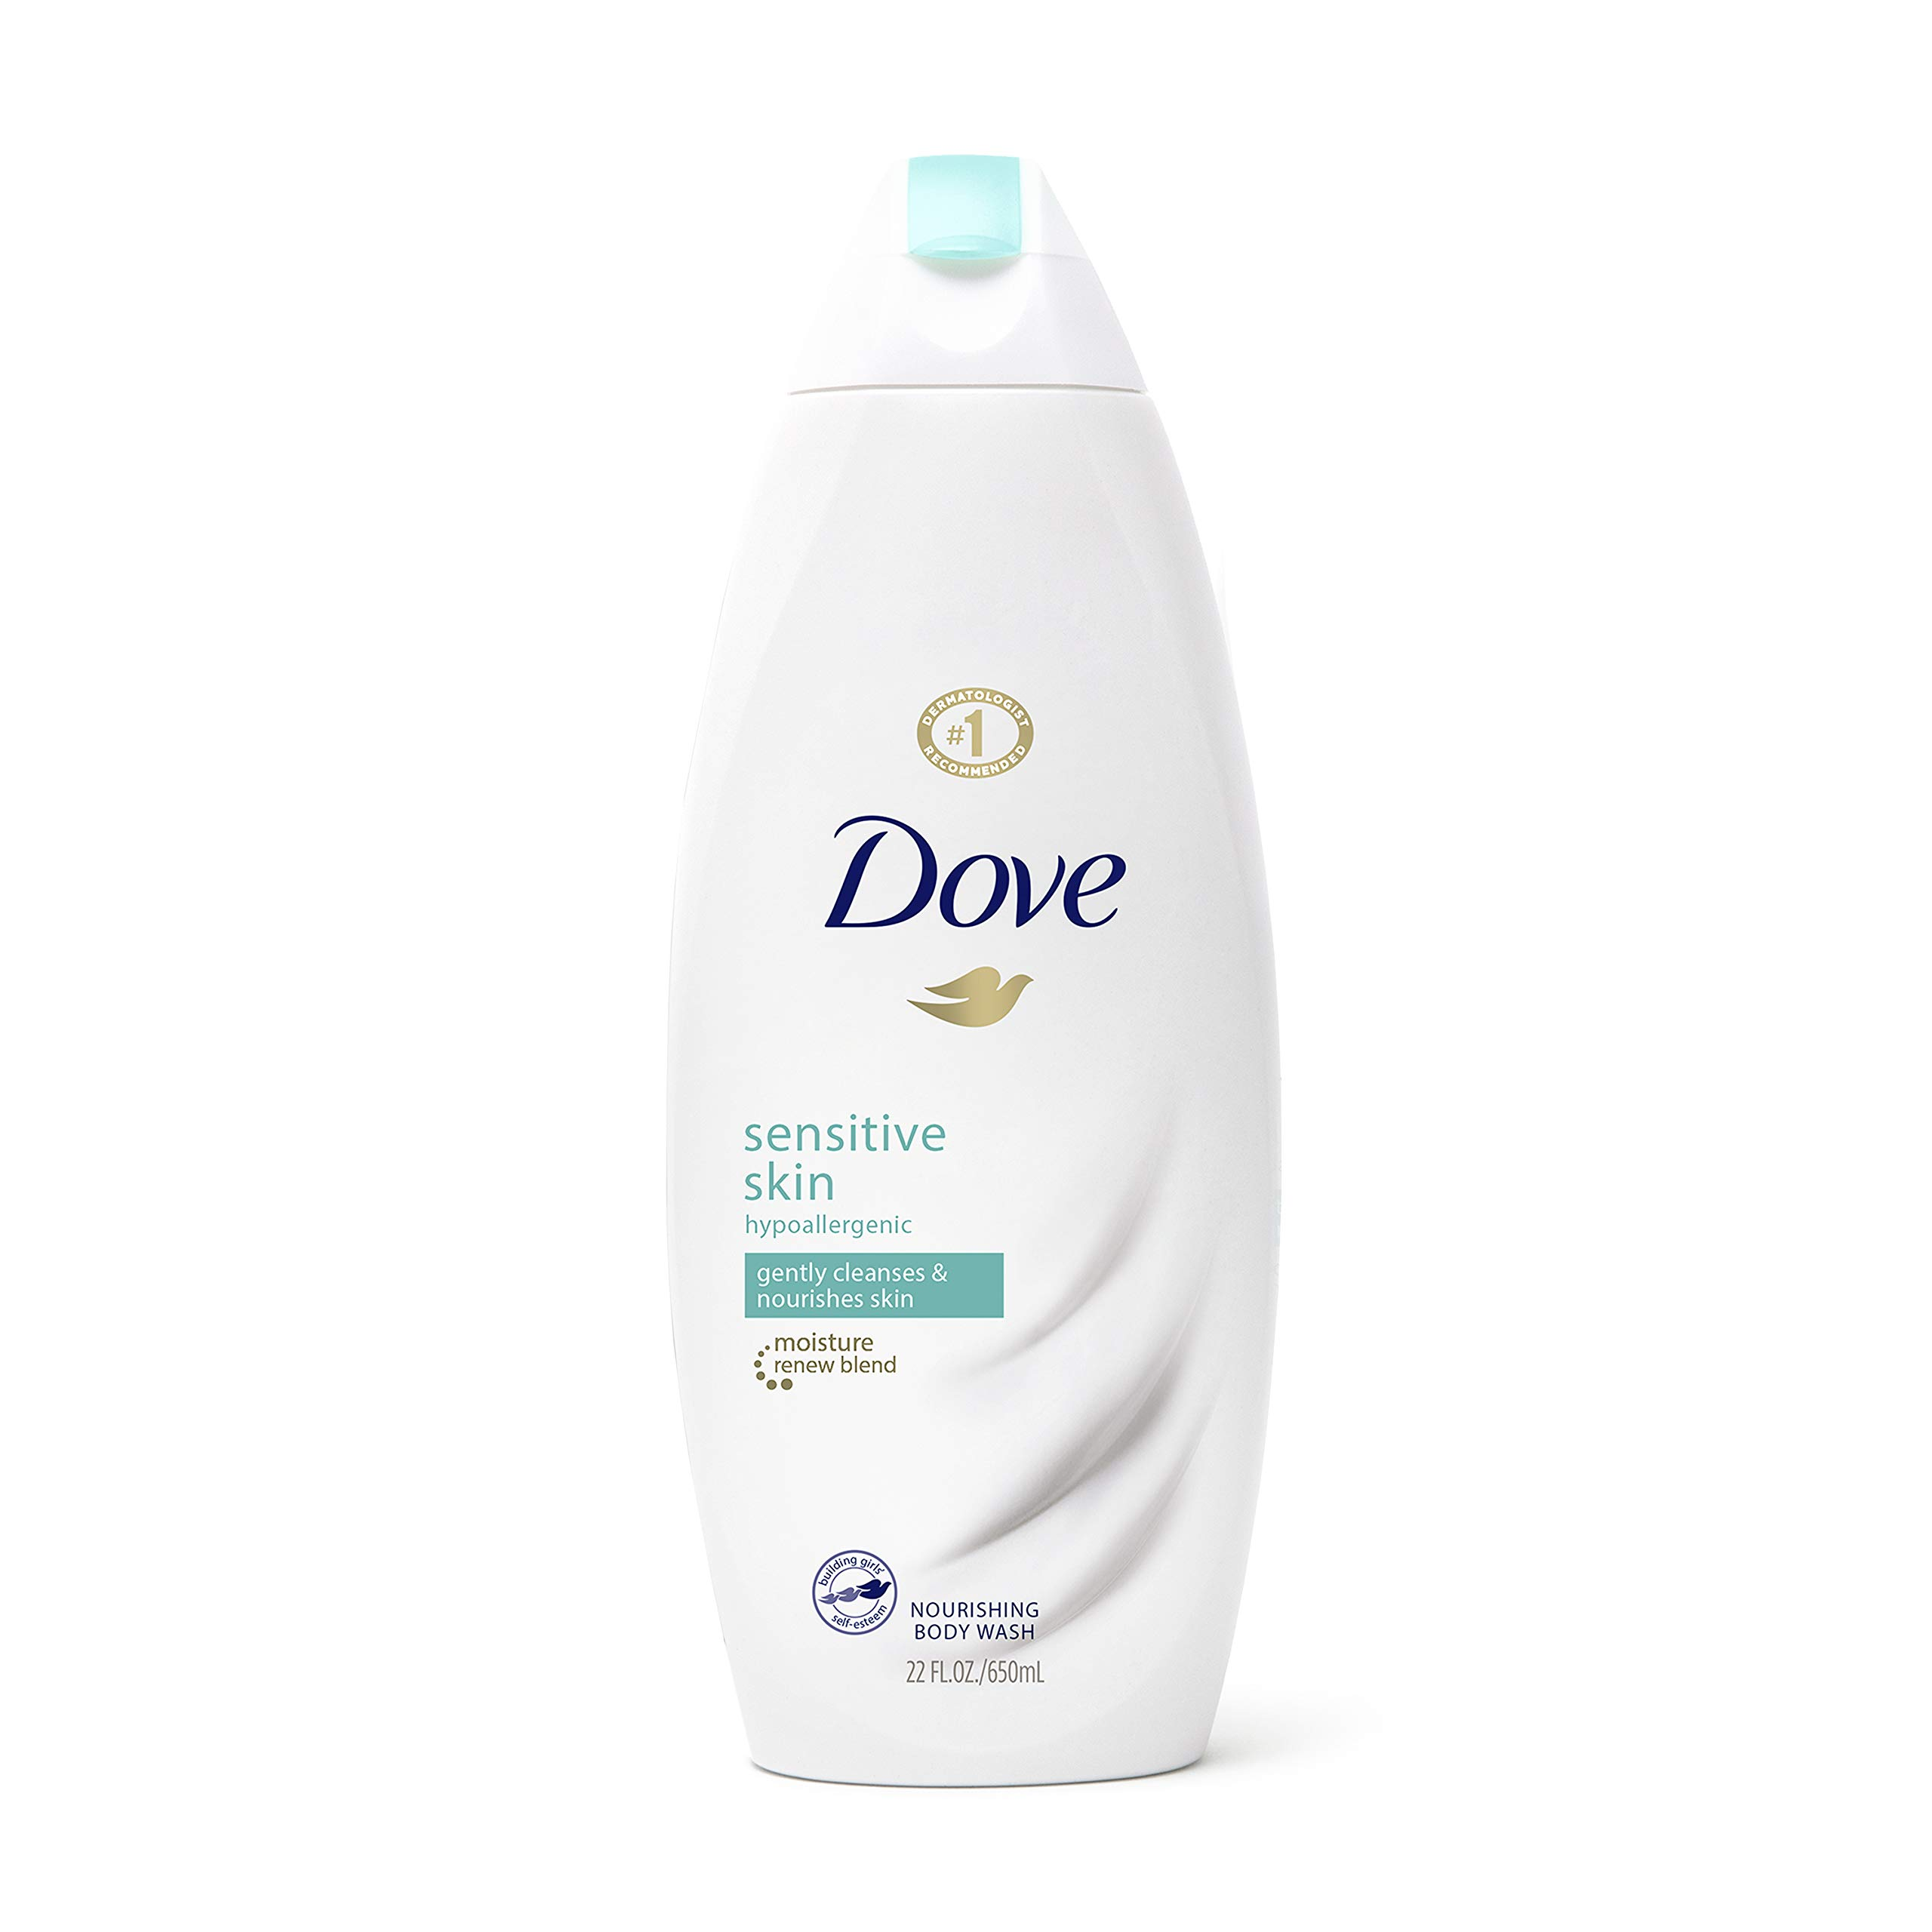 Dove Body Wash For Softer and Smoother Skin Sensitive Skin Hypoallergenic and Sulfate Free Body Wash 22 oz